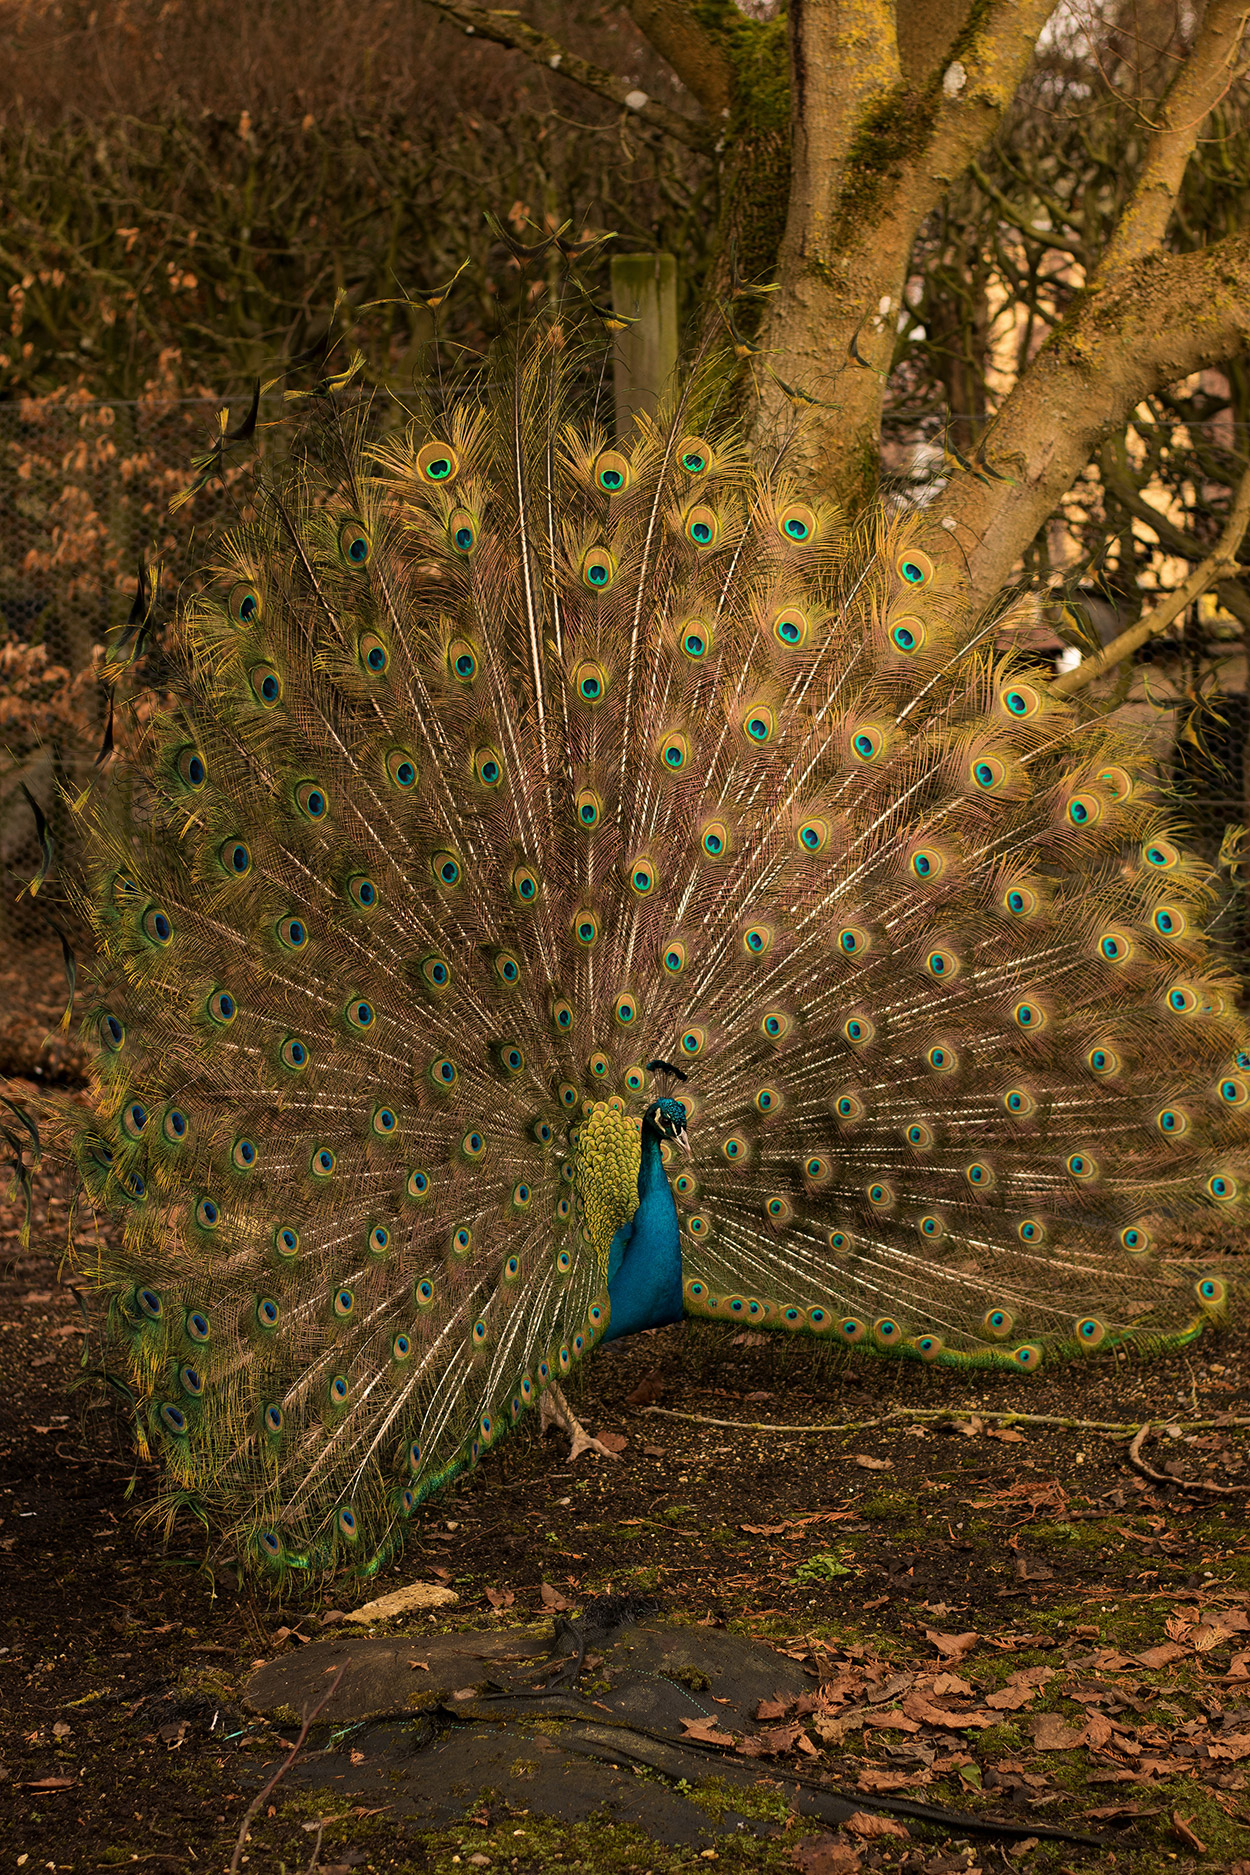 A beautiful blue male peacock spreading it's tail in the pheasantry at Sudeley Castle & Gardens, Cotswolds, Gloucestershire